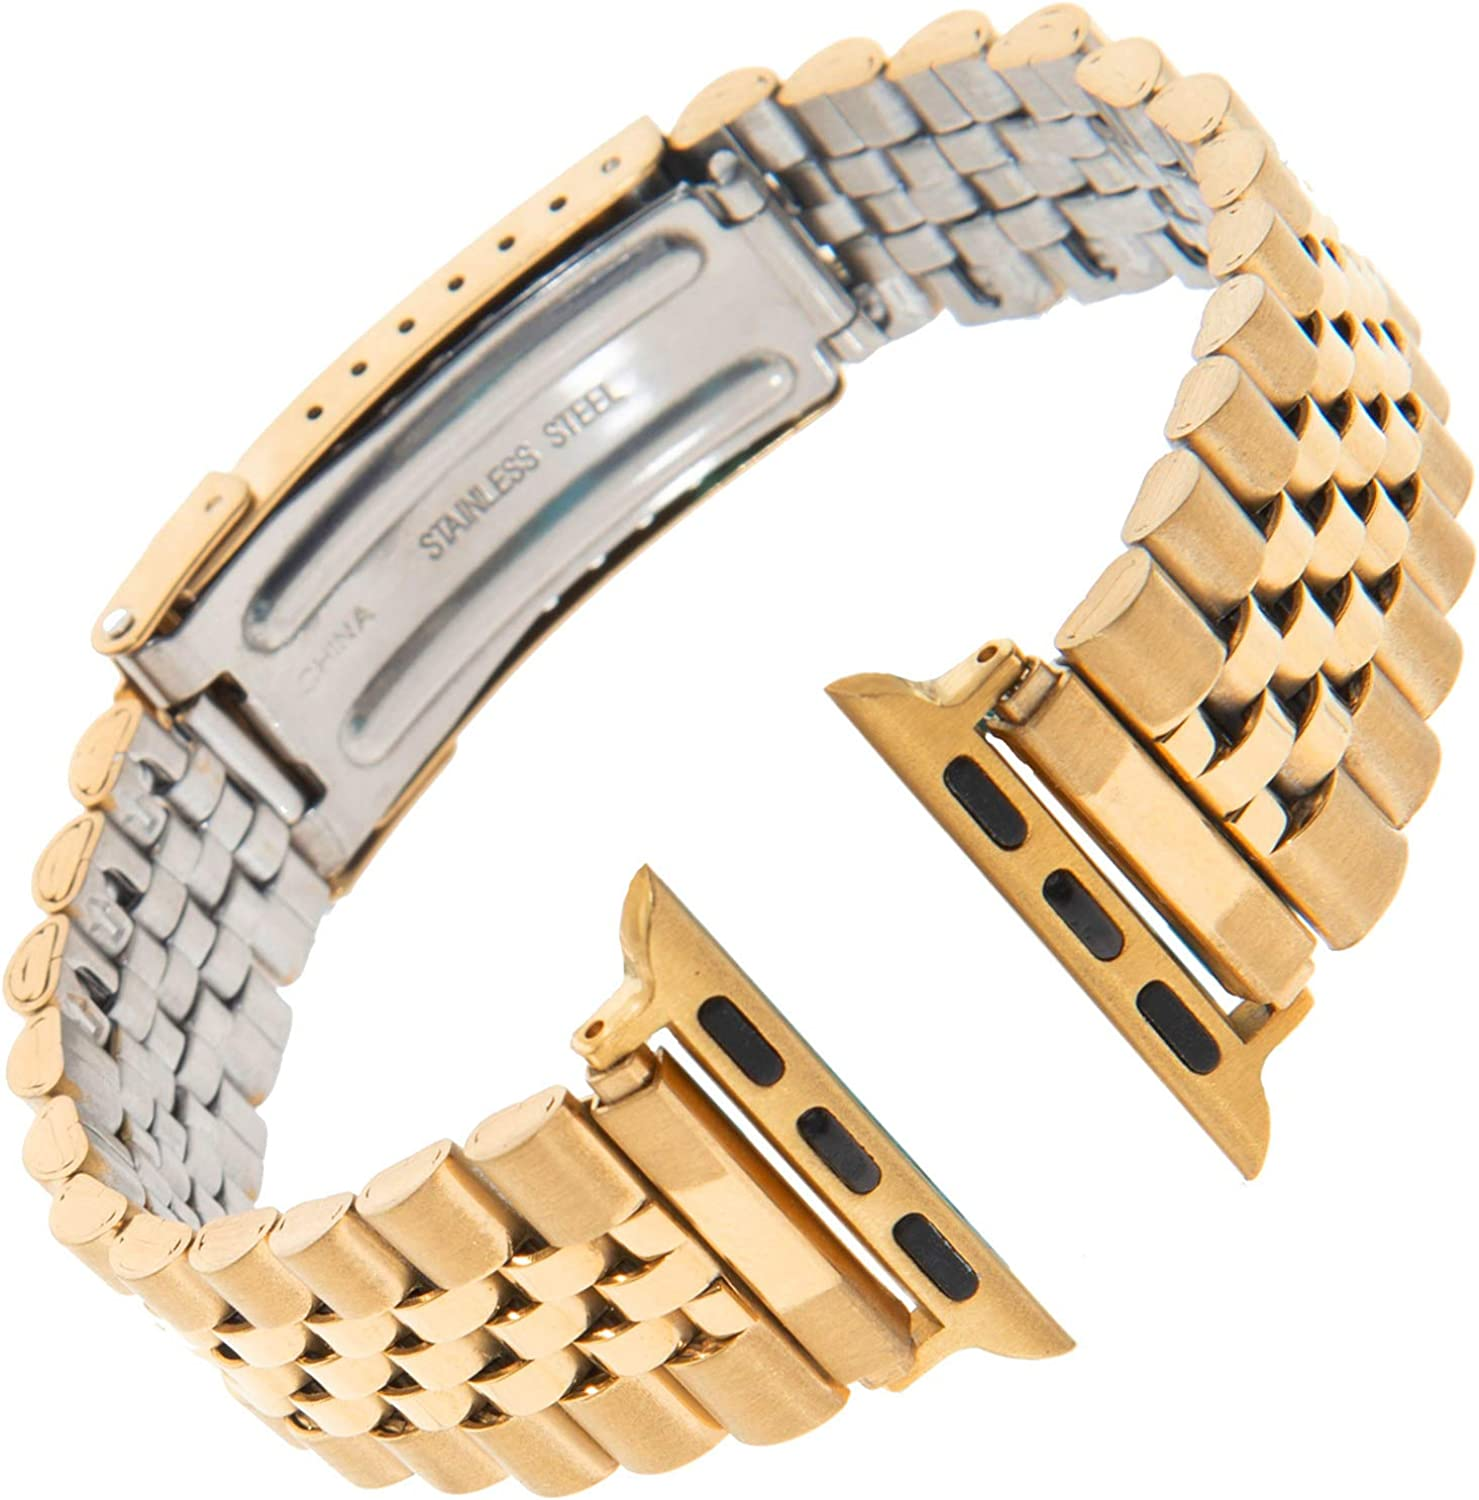 Gilden for Apple 38mm/40mm Jubilee-Style Non-Expansion Extra-Long Stainless Steel Watch Band 1542-SMART